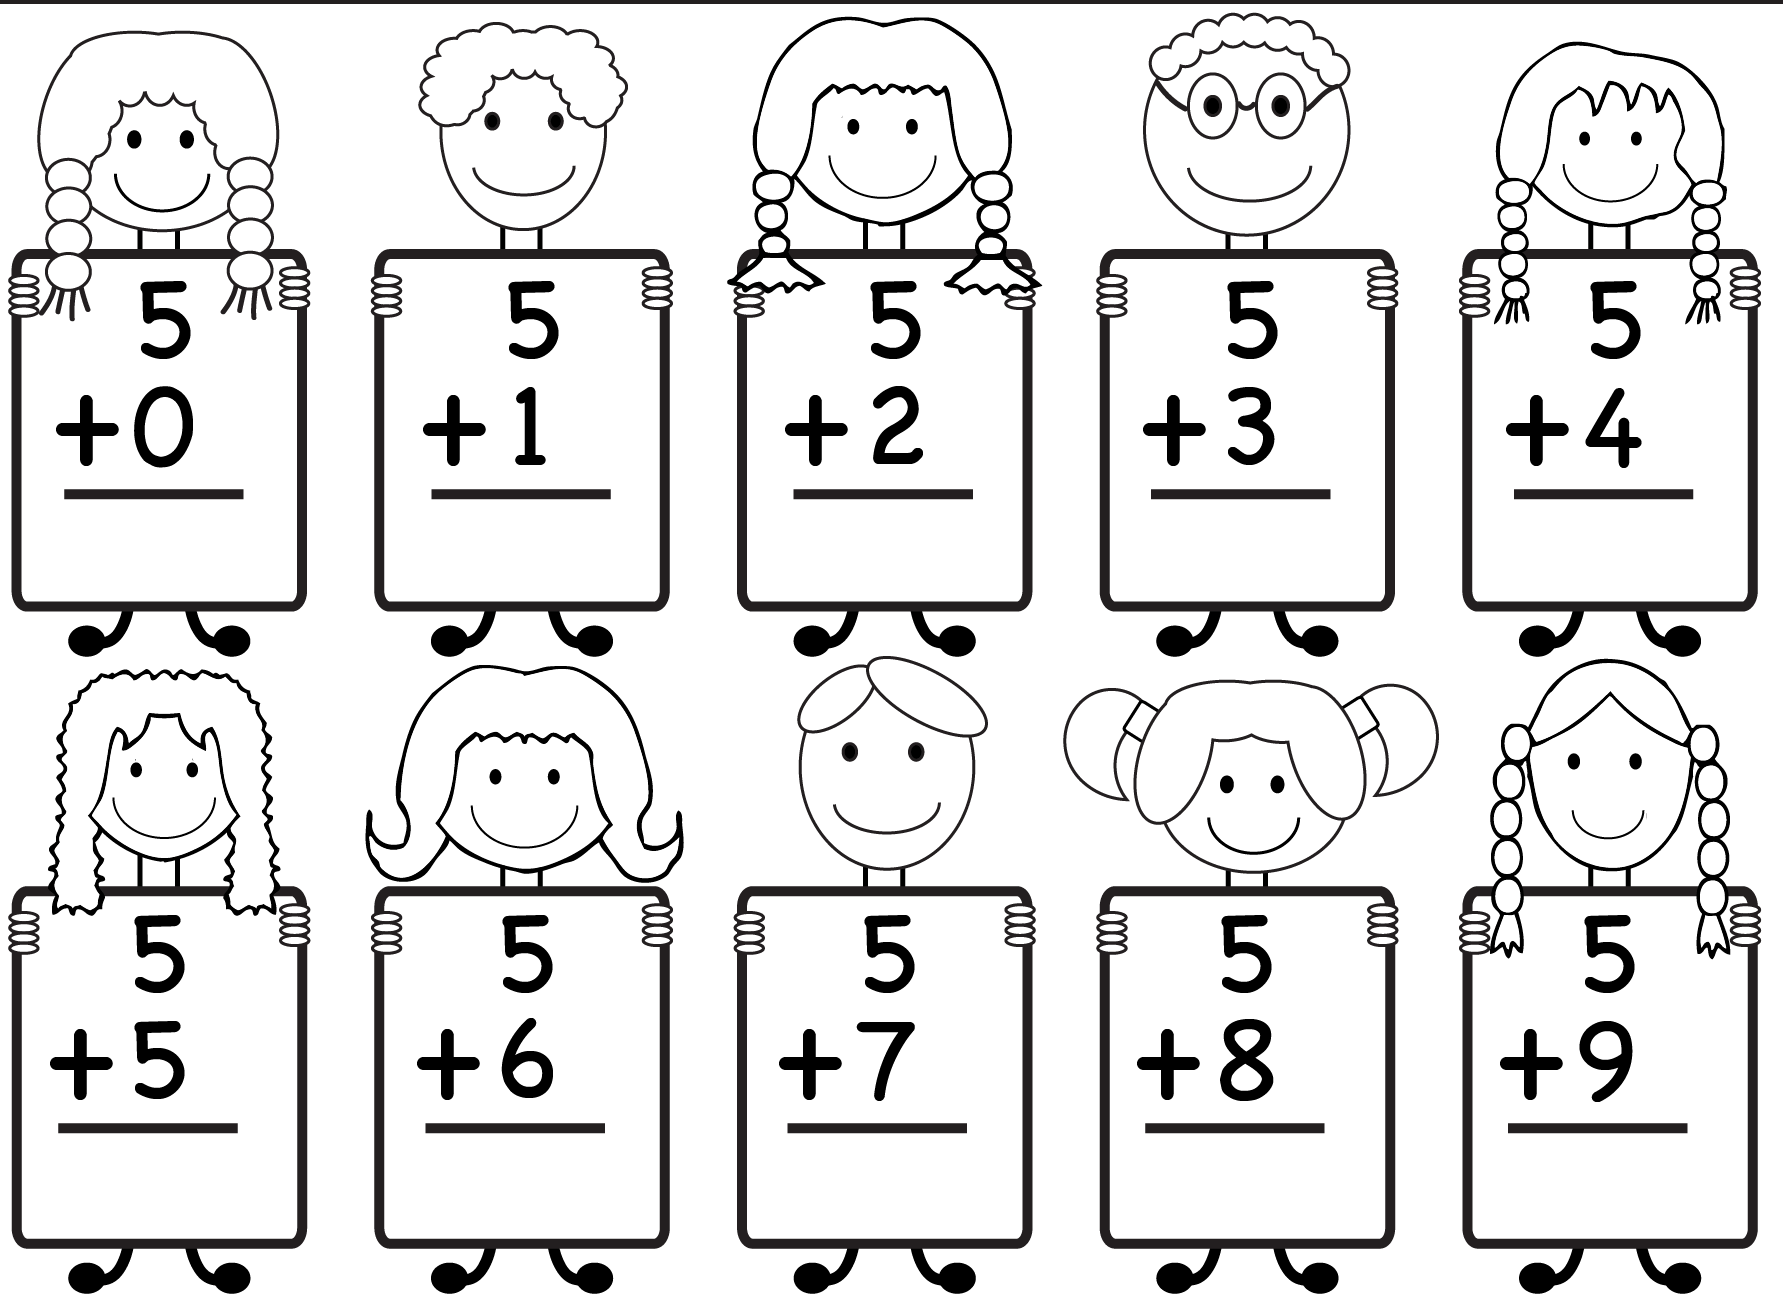 Printable Preschool Worksheets : Free printable kindergarten math worksheets